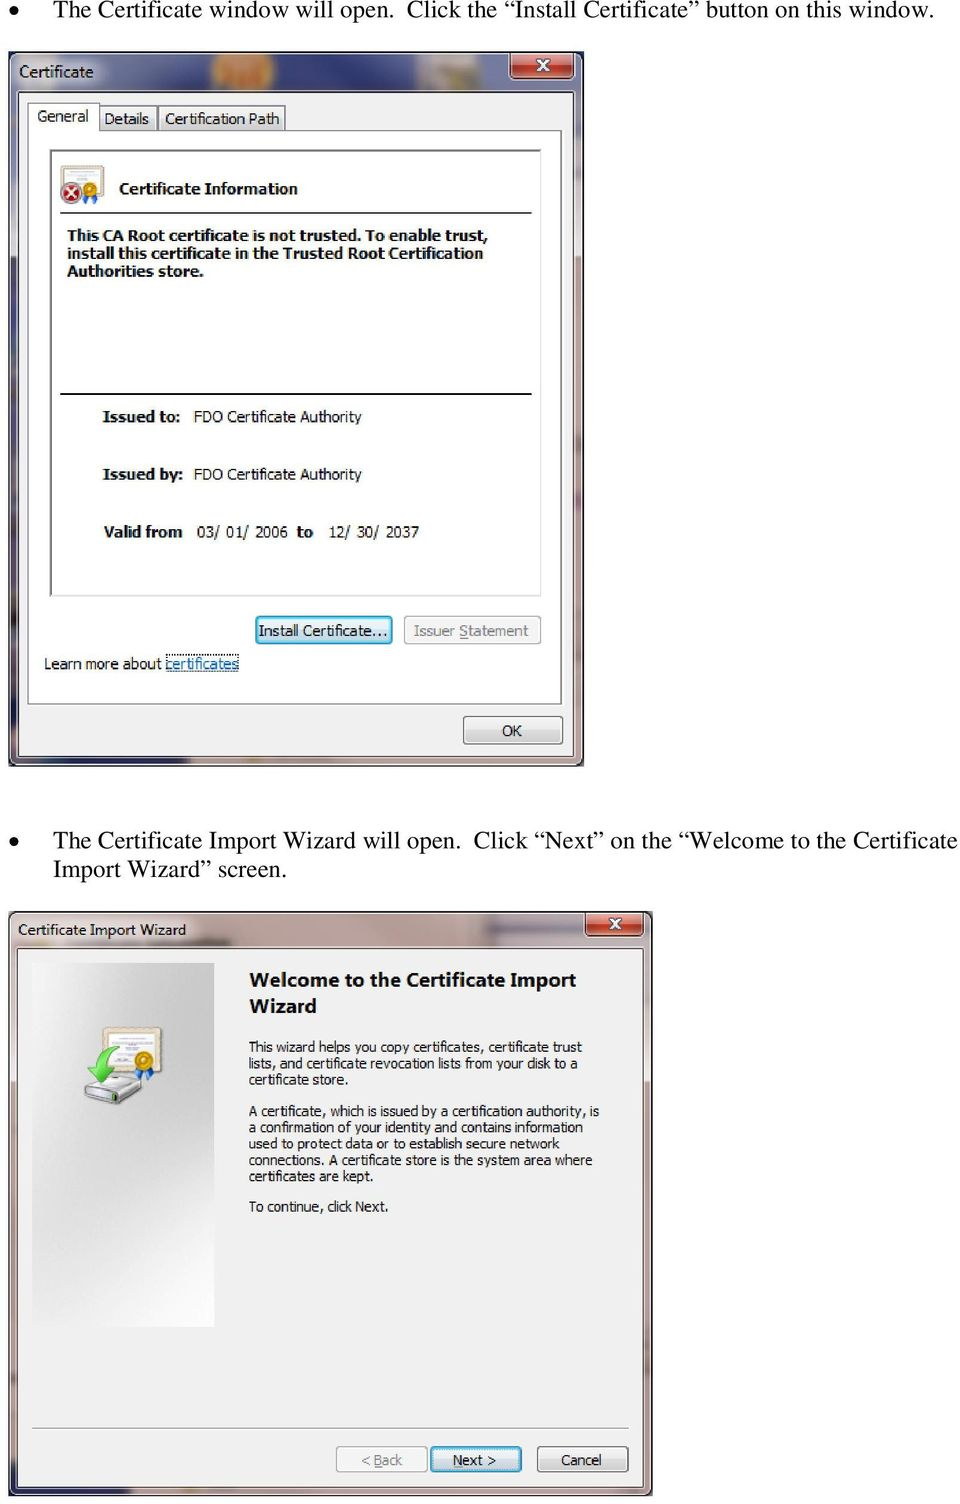 window. The Certificate Import Wizard will open.